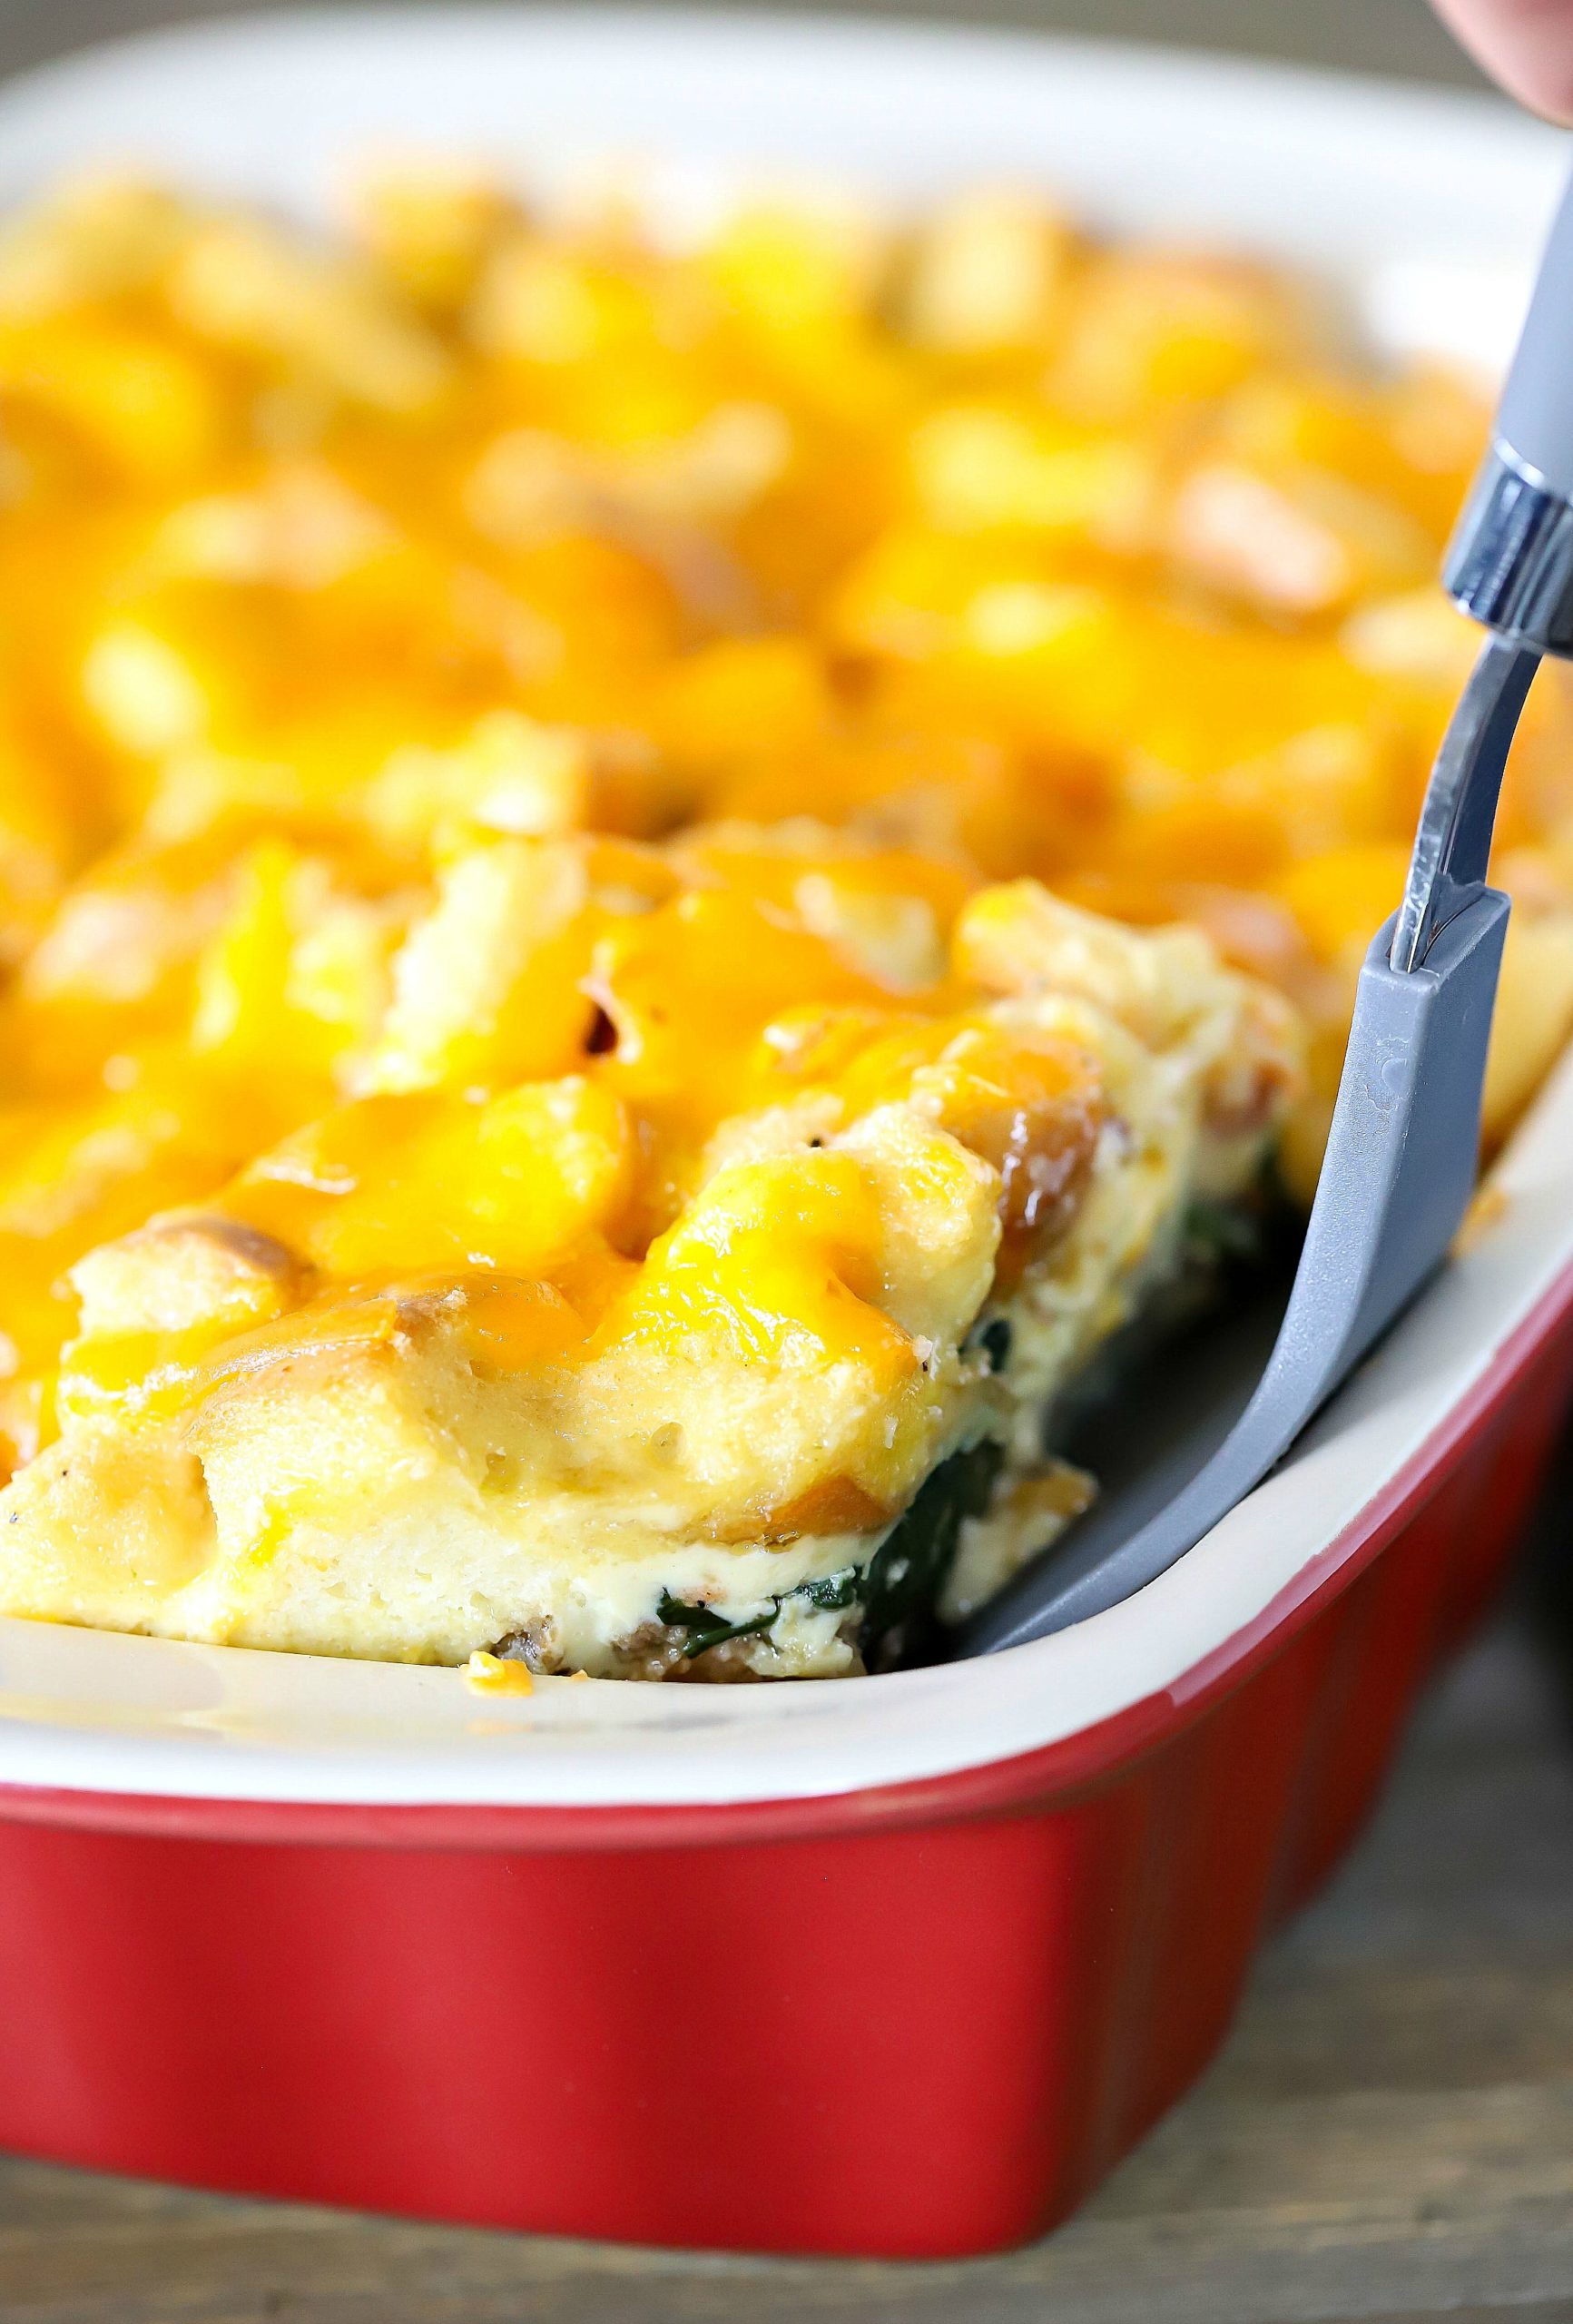 spatula scooping a slice of egg strata from a casserole dish